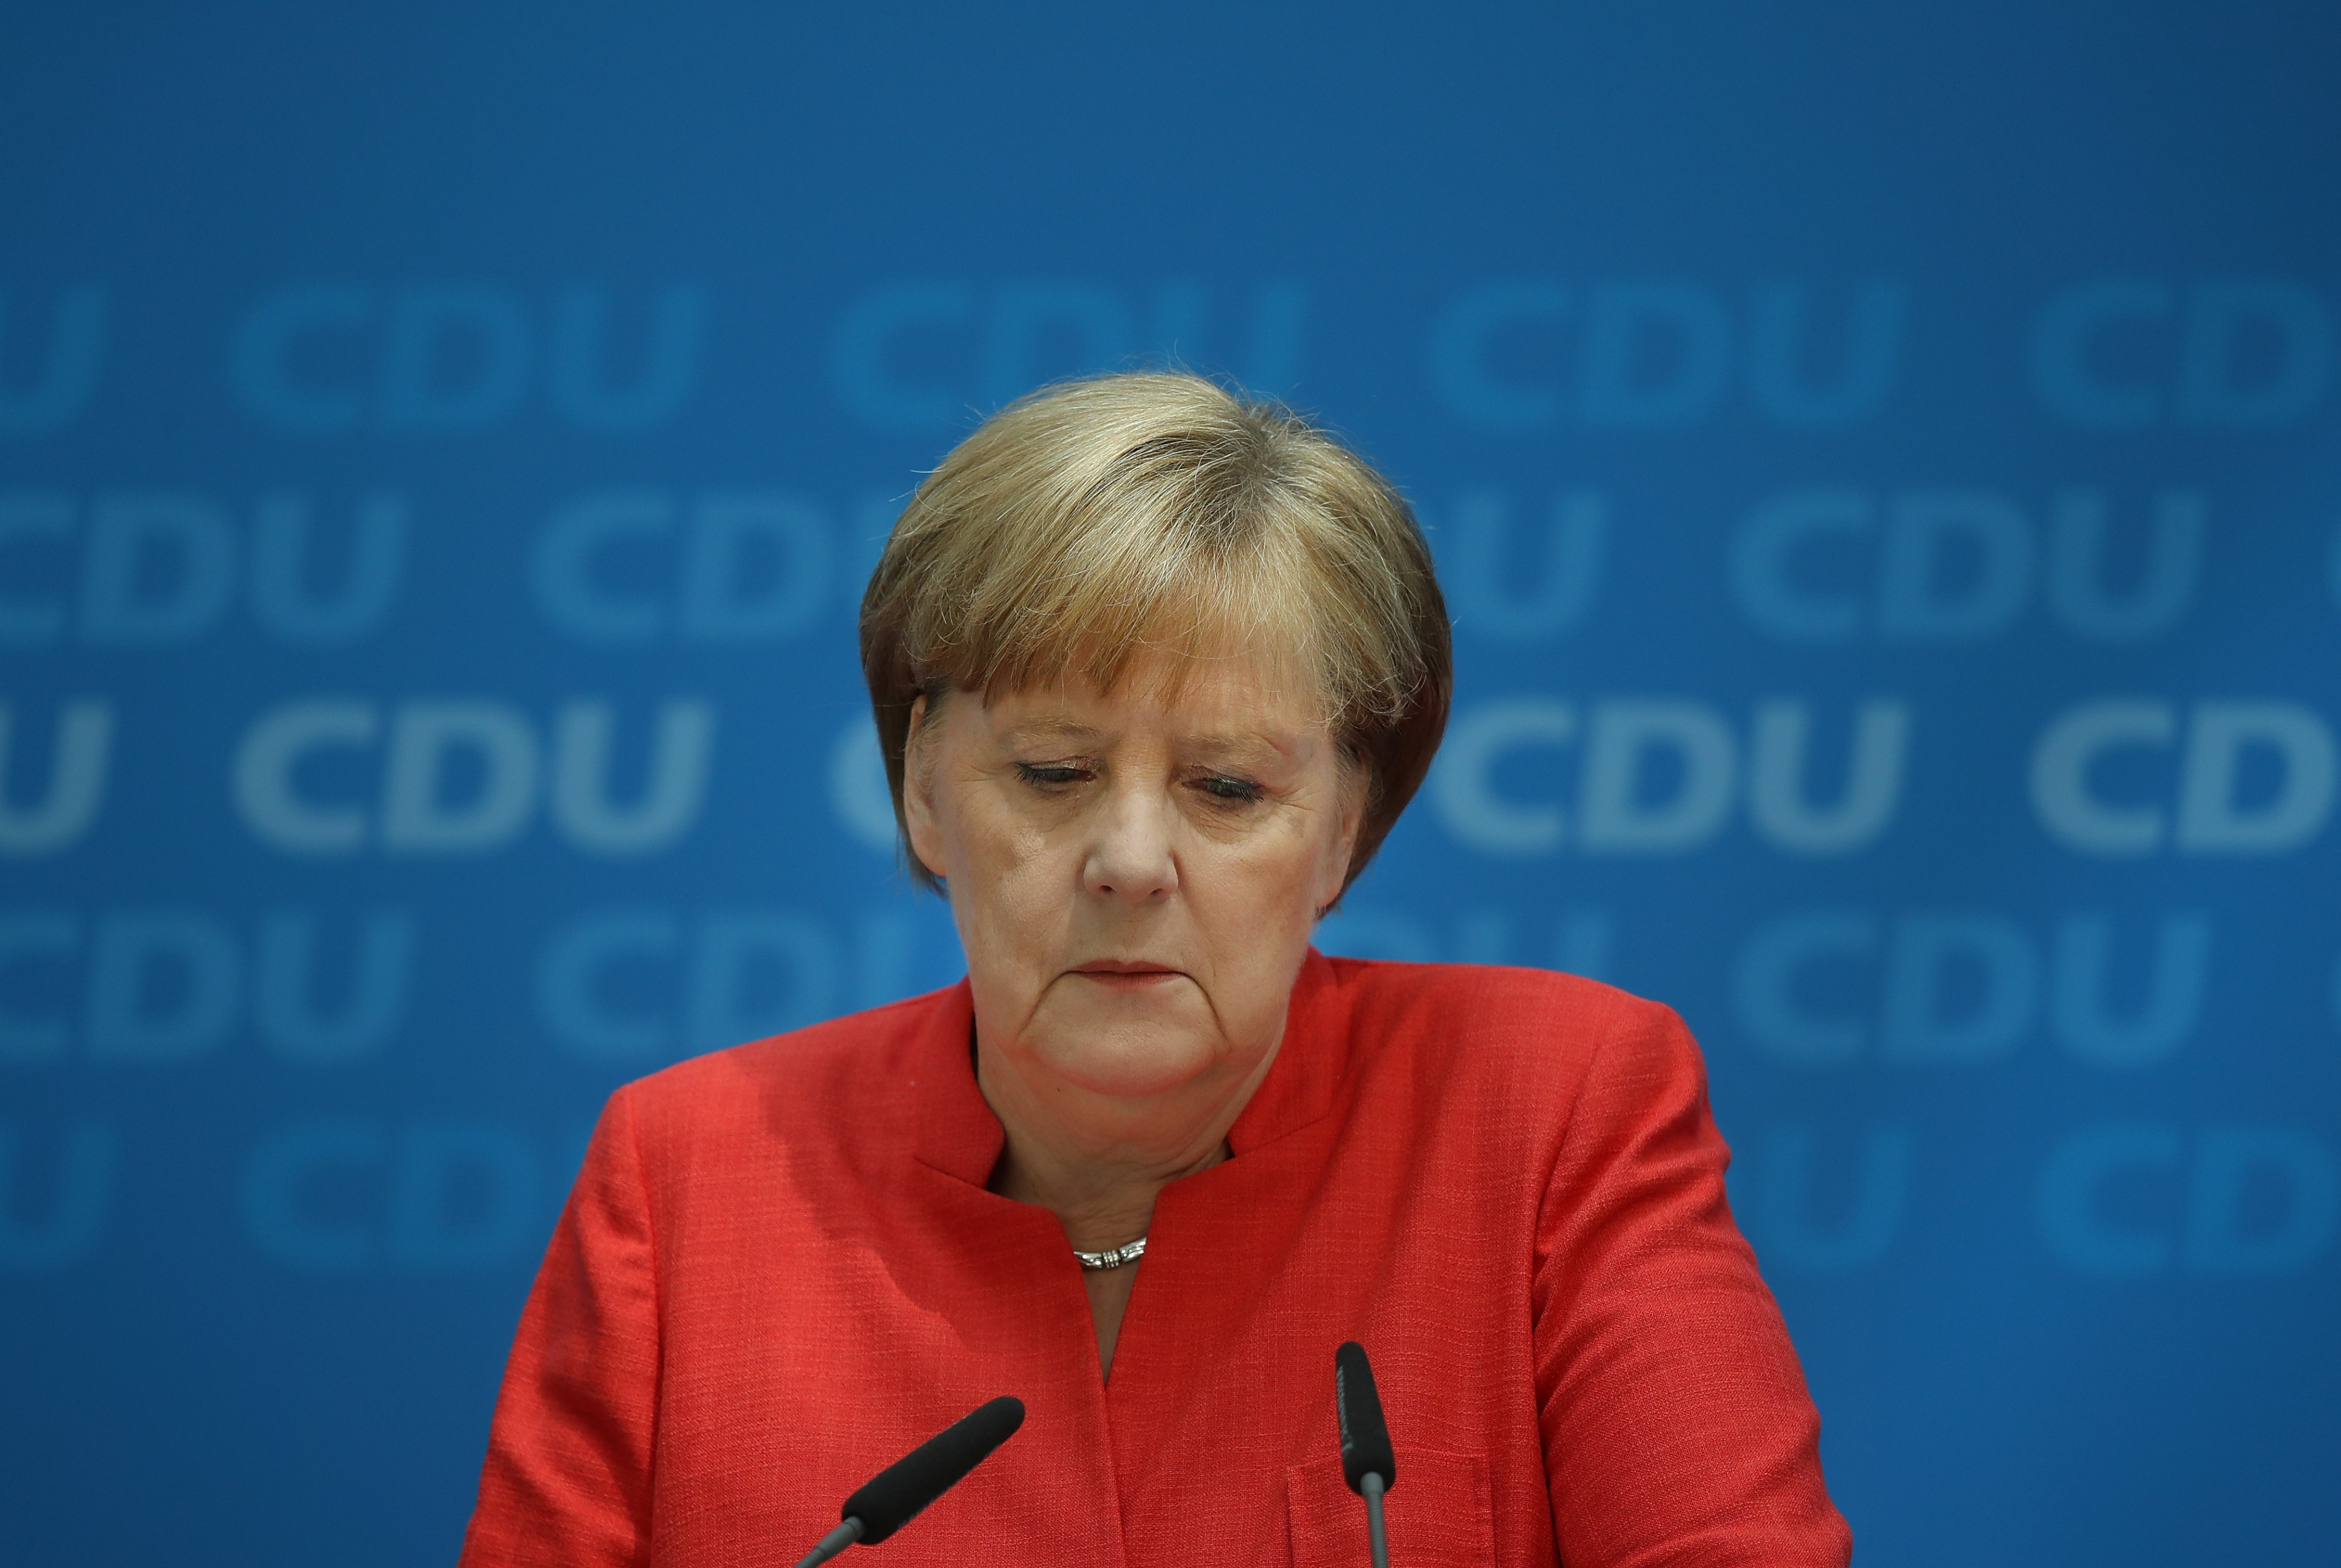 JUNE 18: German Chancellor Angela Merkel, who has been locked a feud with German Interior Minister Horst Seehofer over asylum and migration policy.